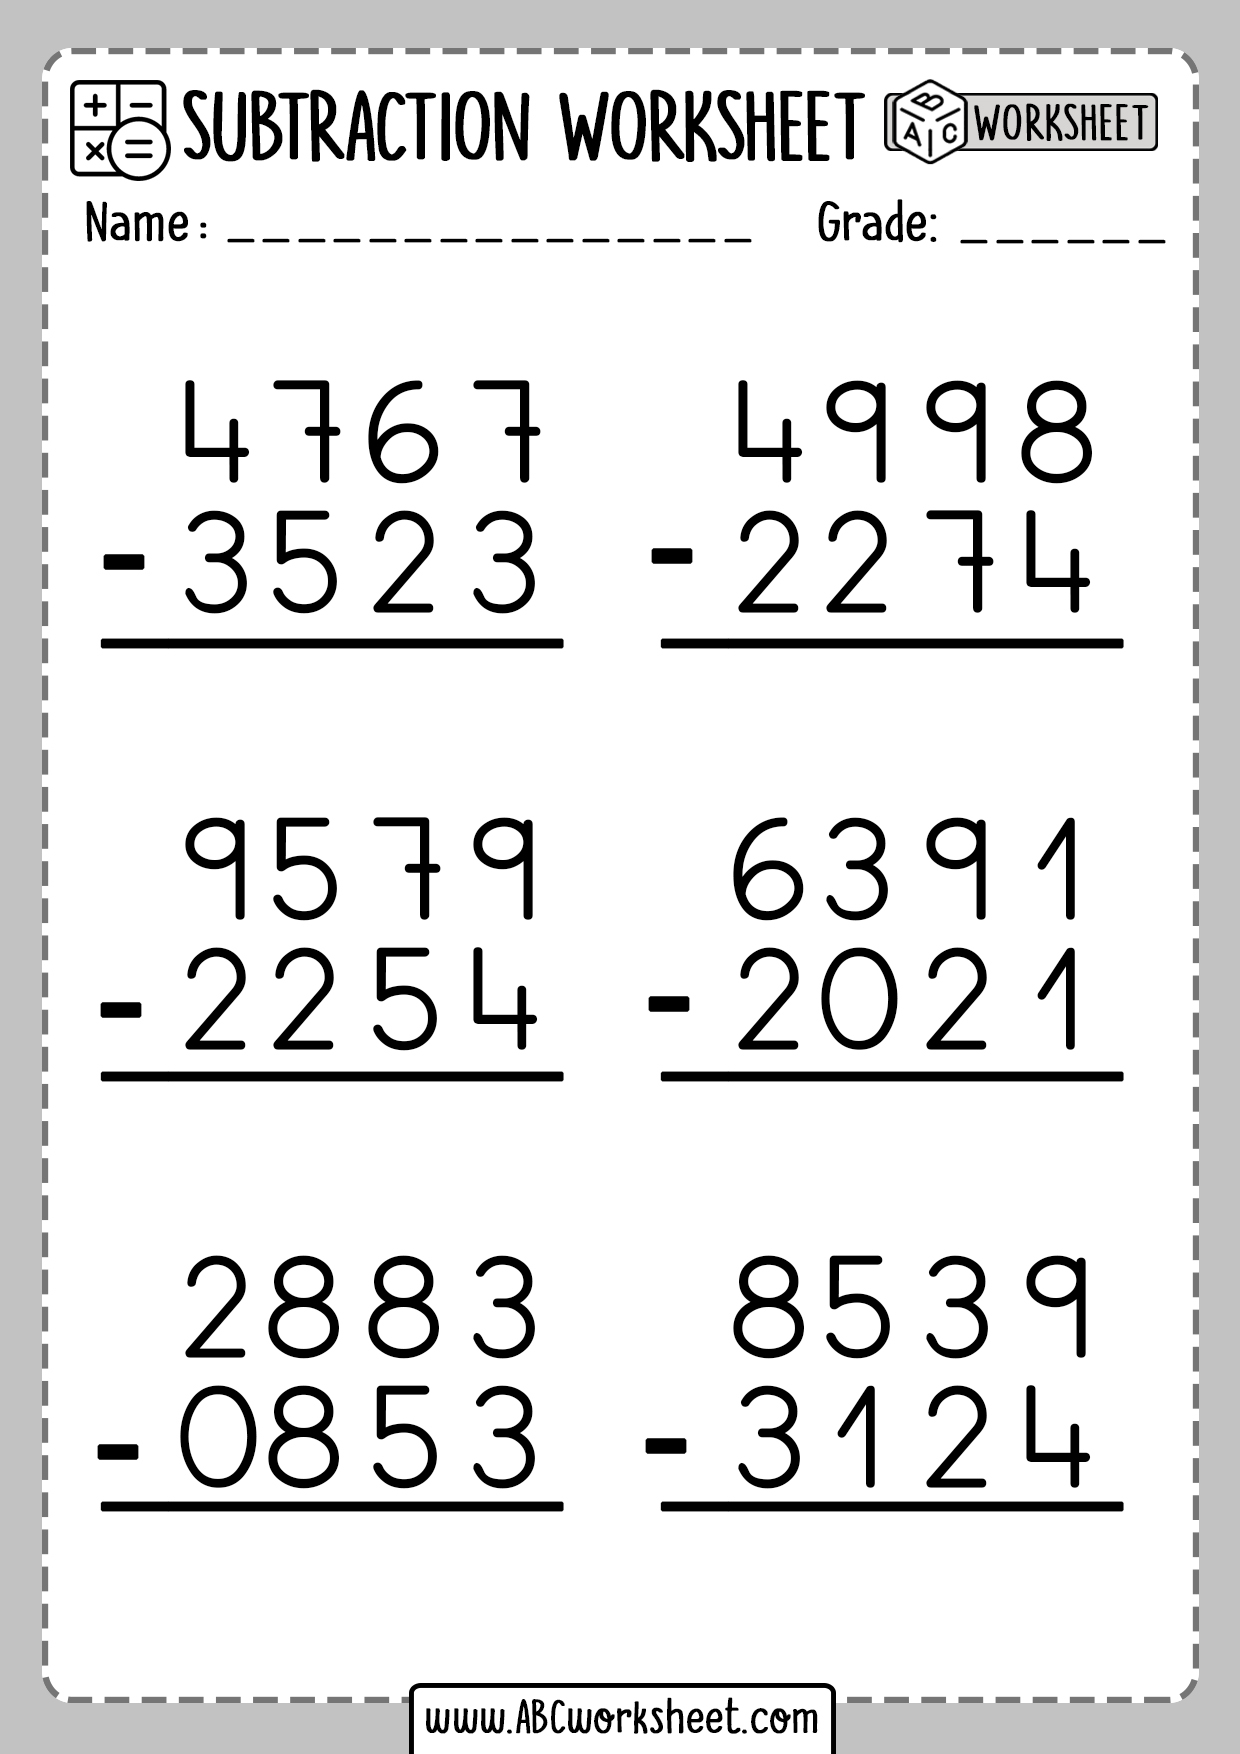 hight resolution of Subtraction Worksheets Without Borrowing   Printable Worksheets and  Activities for Teachers